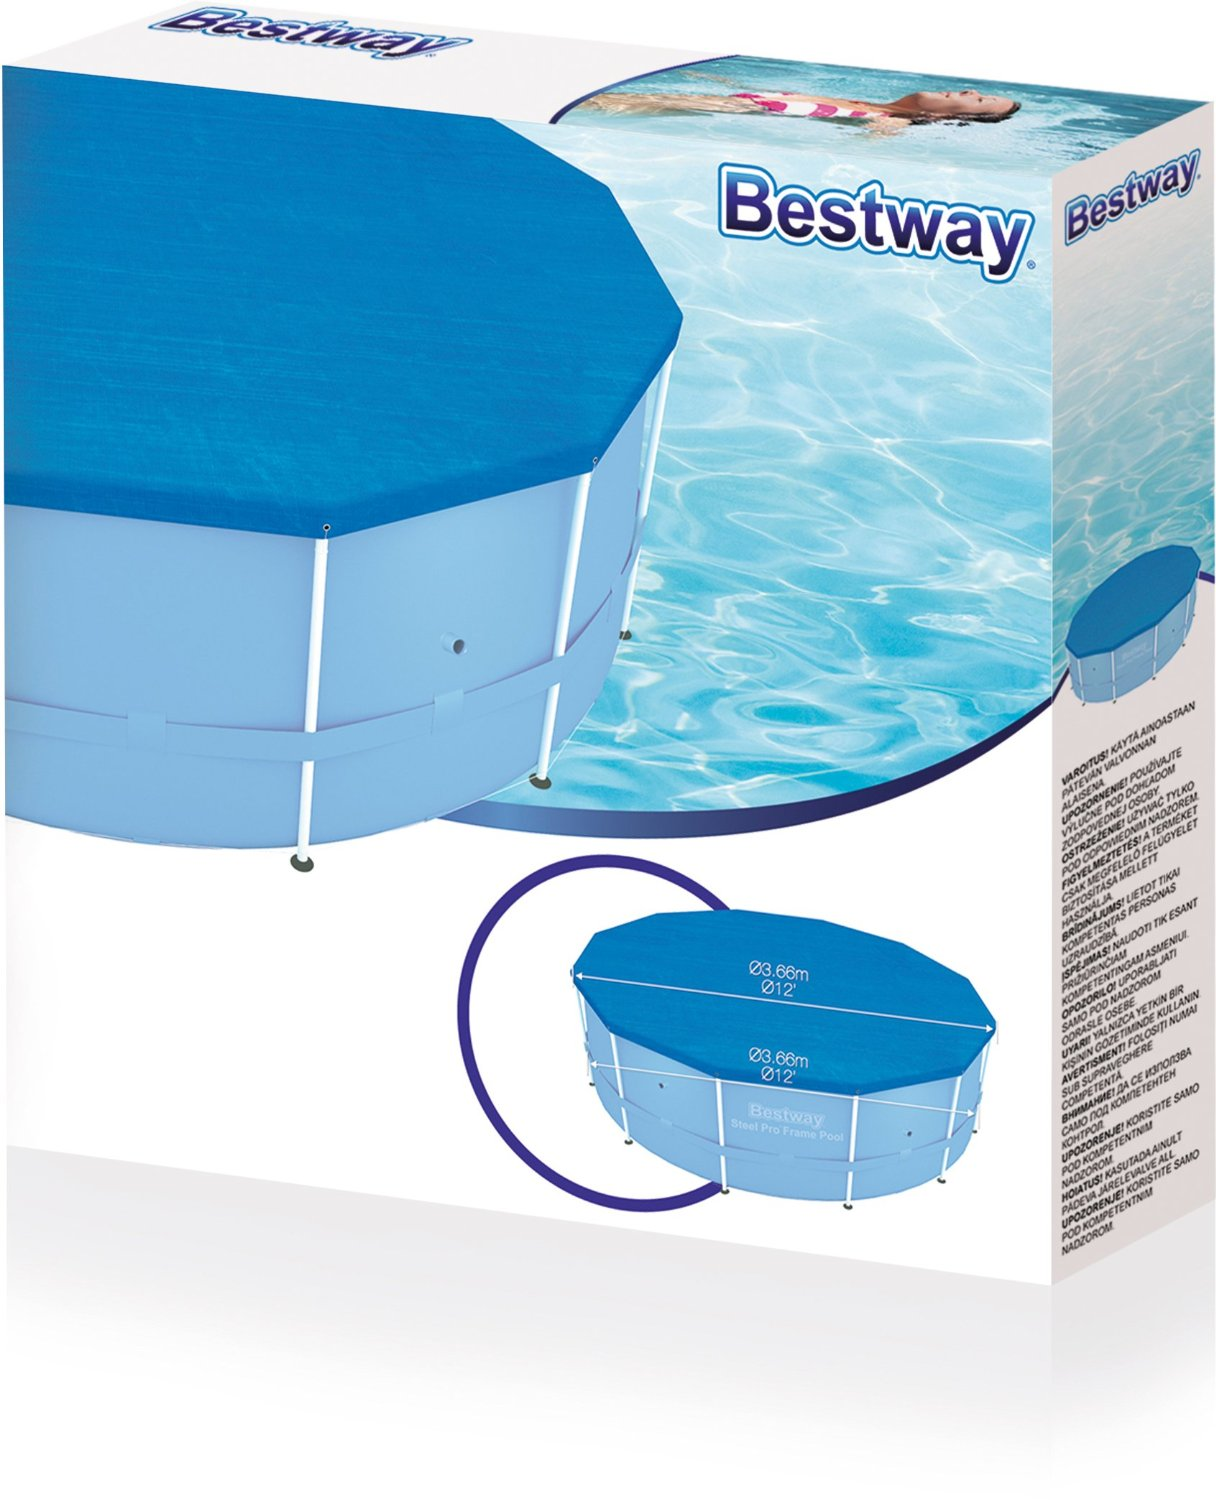 New bestway 10ft steel frame swimming paddling pool protector cover 10 foot ebay for 10ft swimming pool with pump and cover